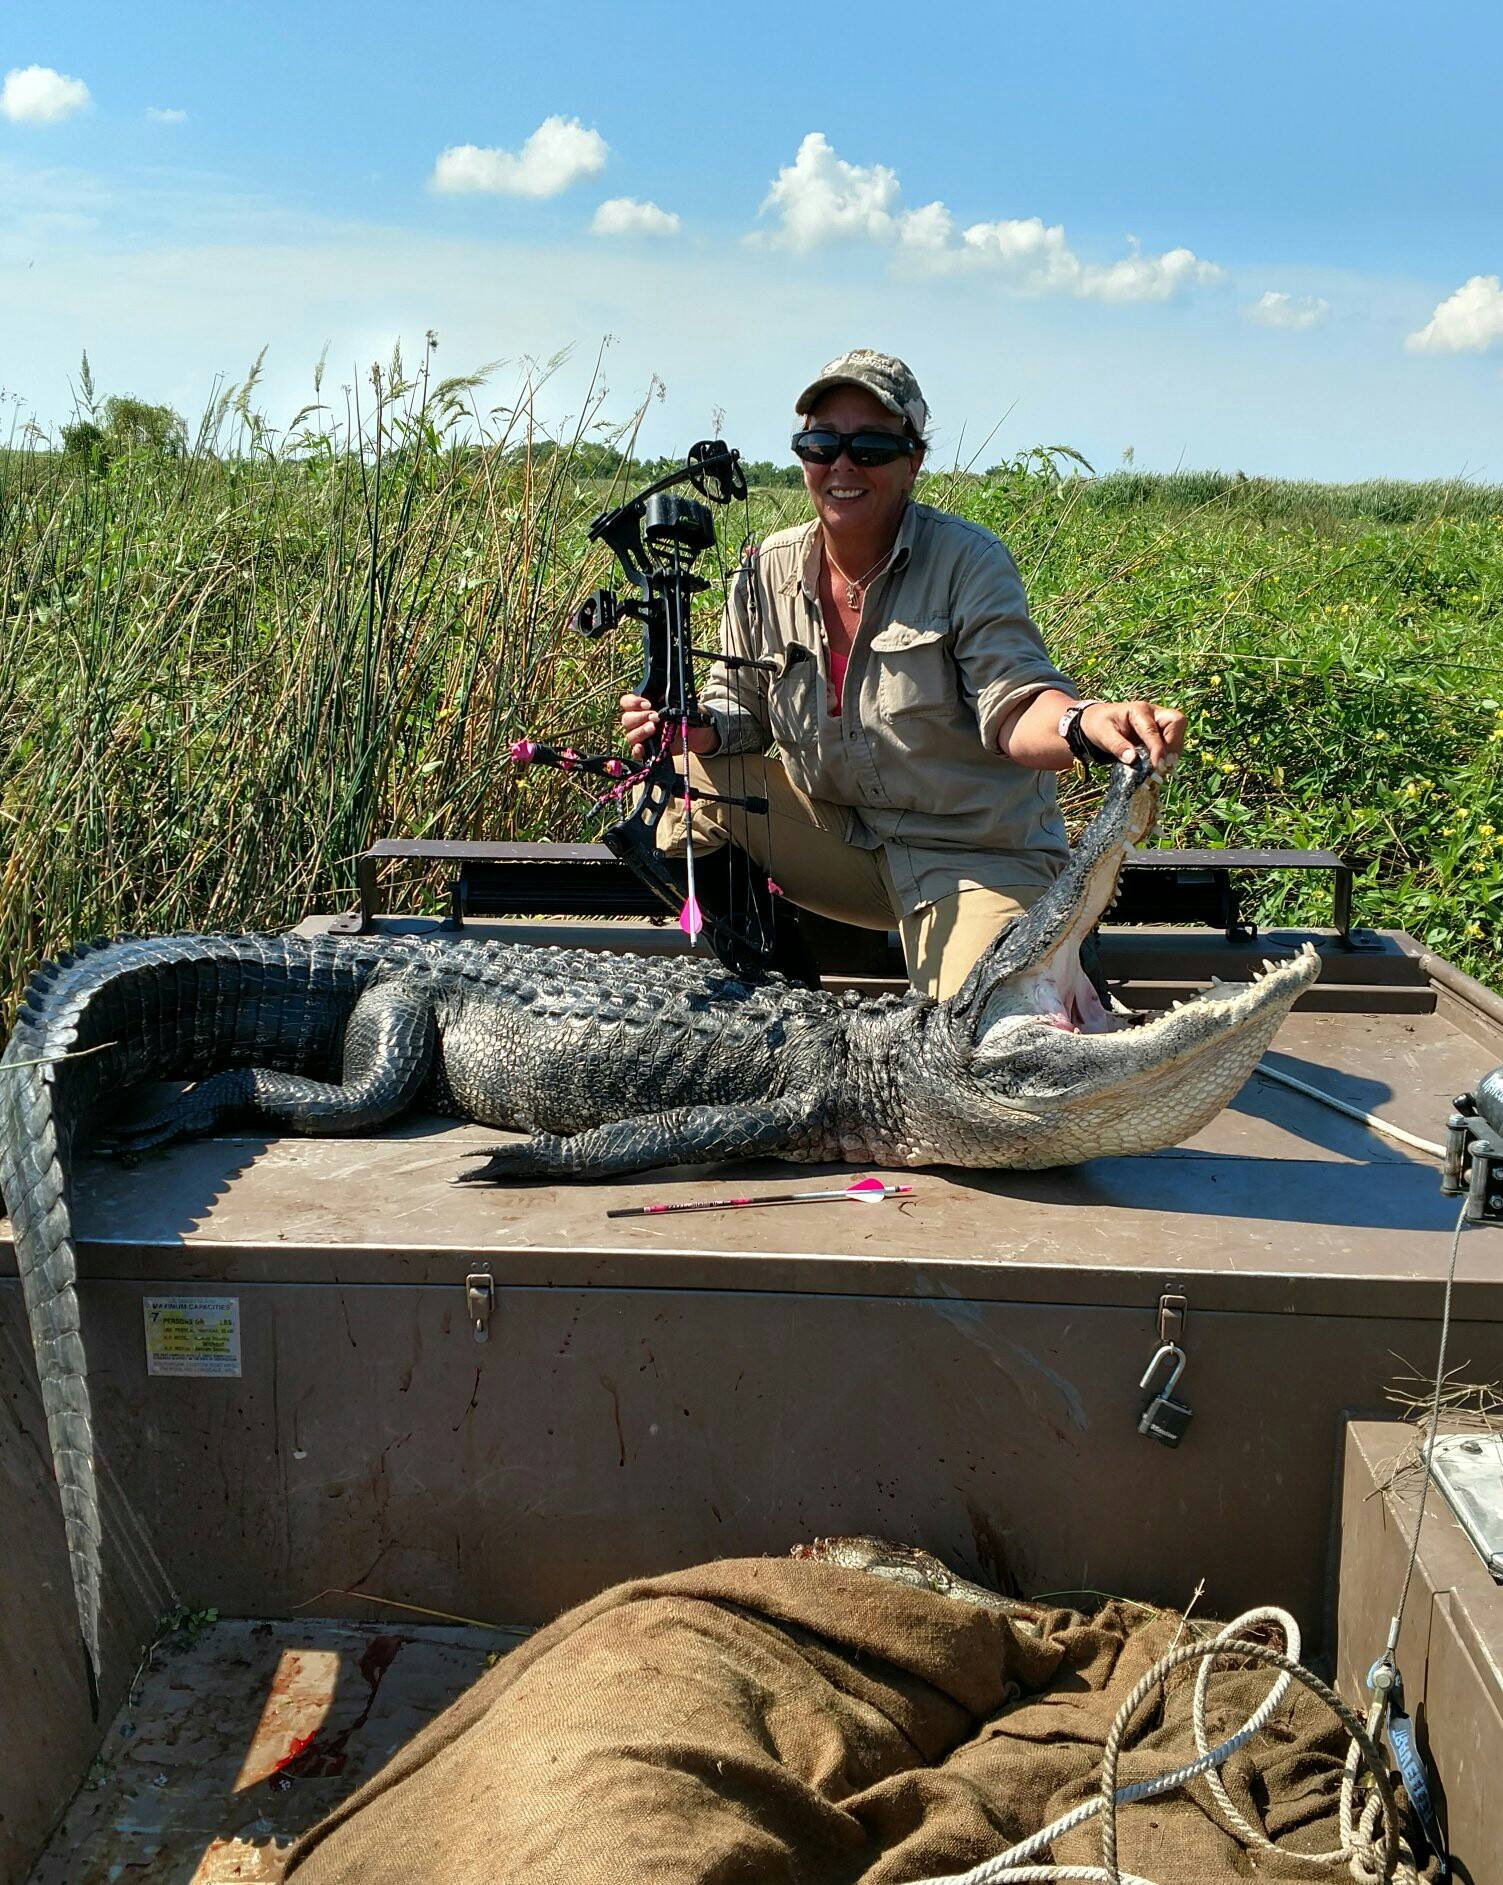 alligator-hunt-15651301961474001252